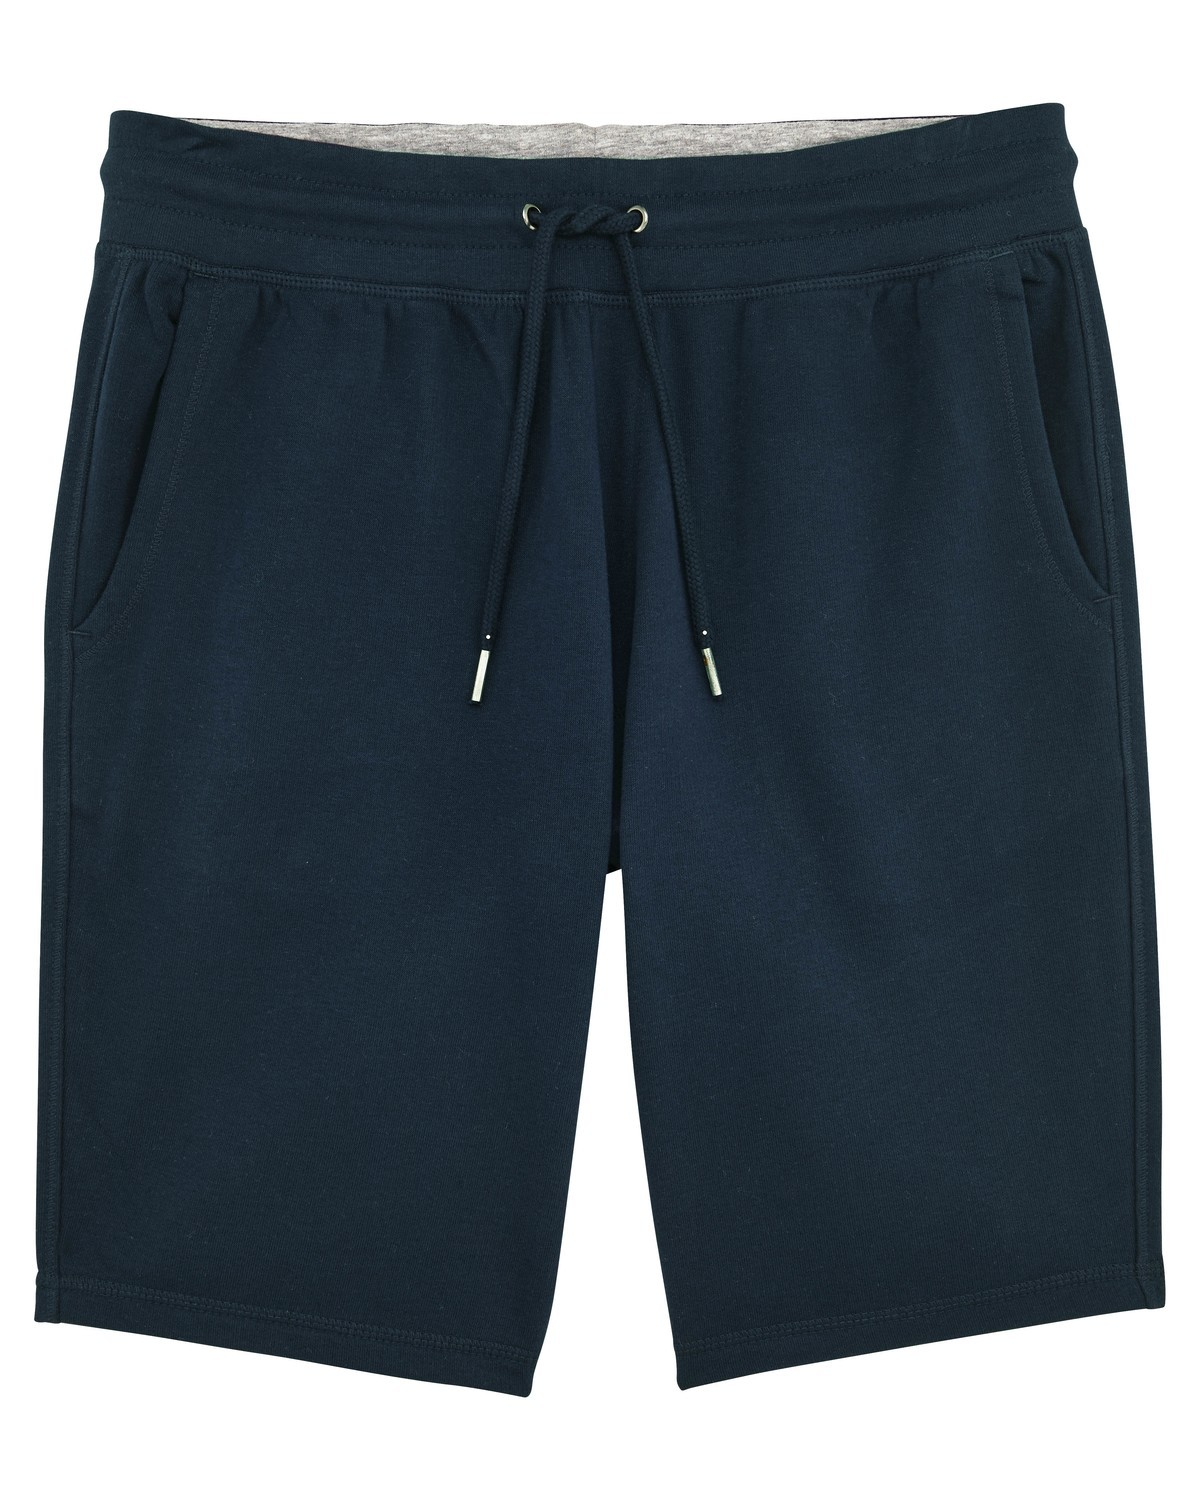 Short jogging homme - 81-1063-2